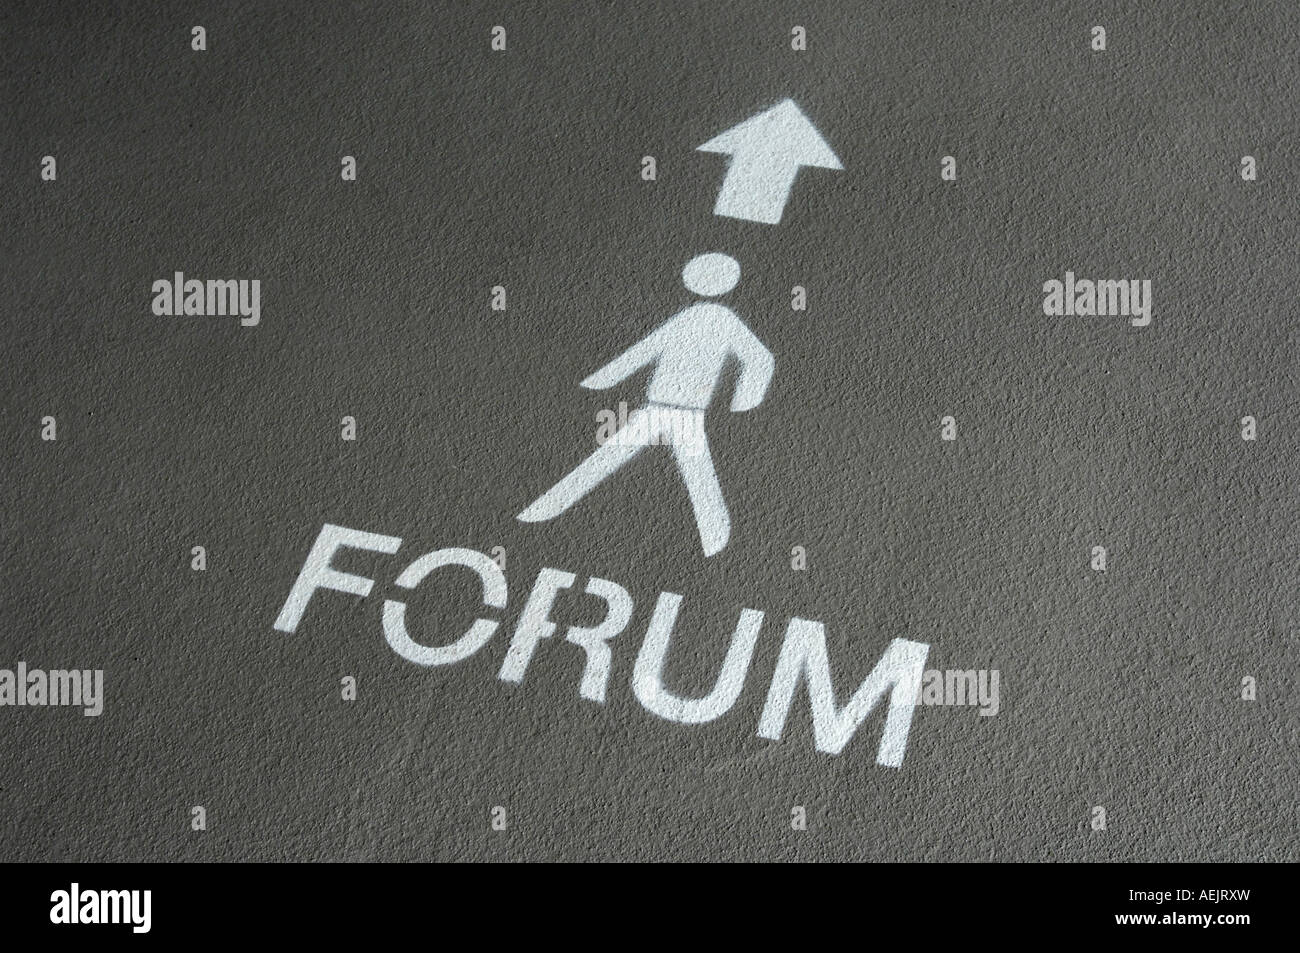 """Icon: """"Forum"""" painted on the floor. Stock Photo"""